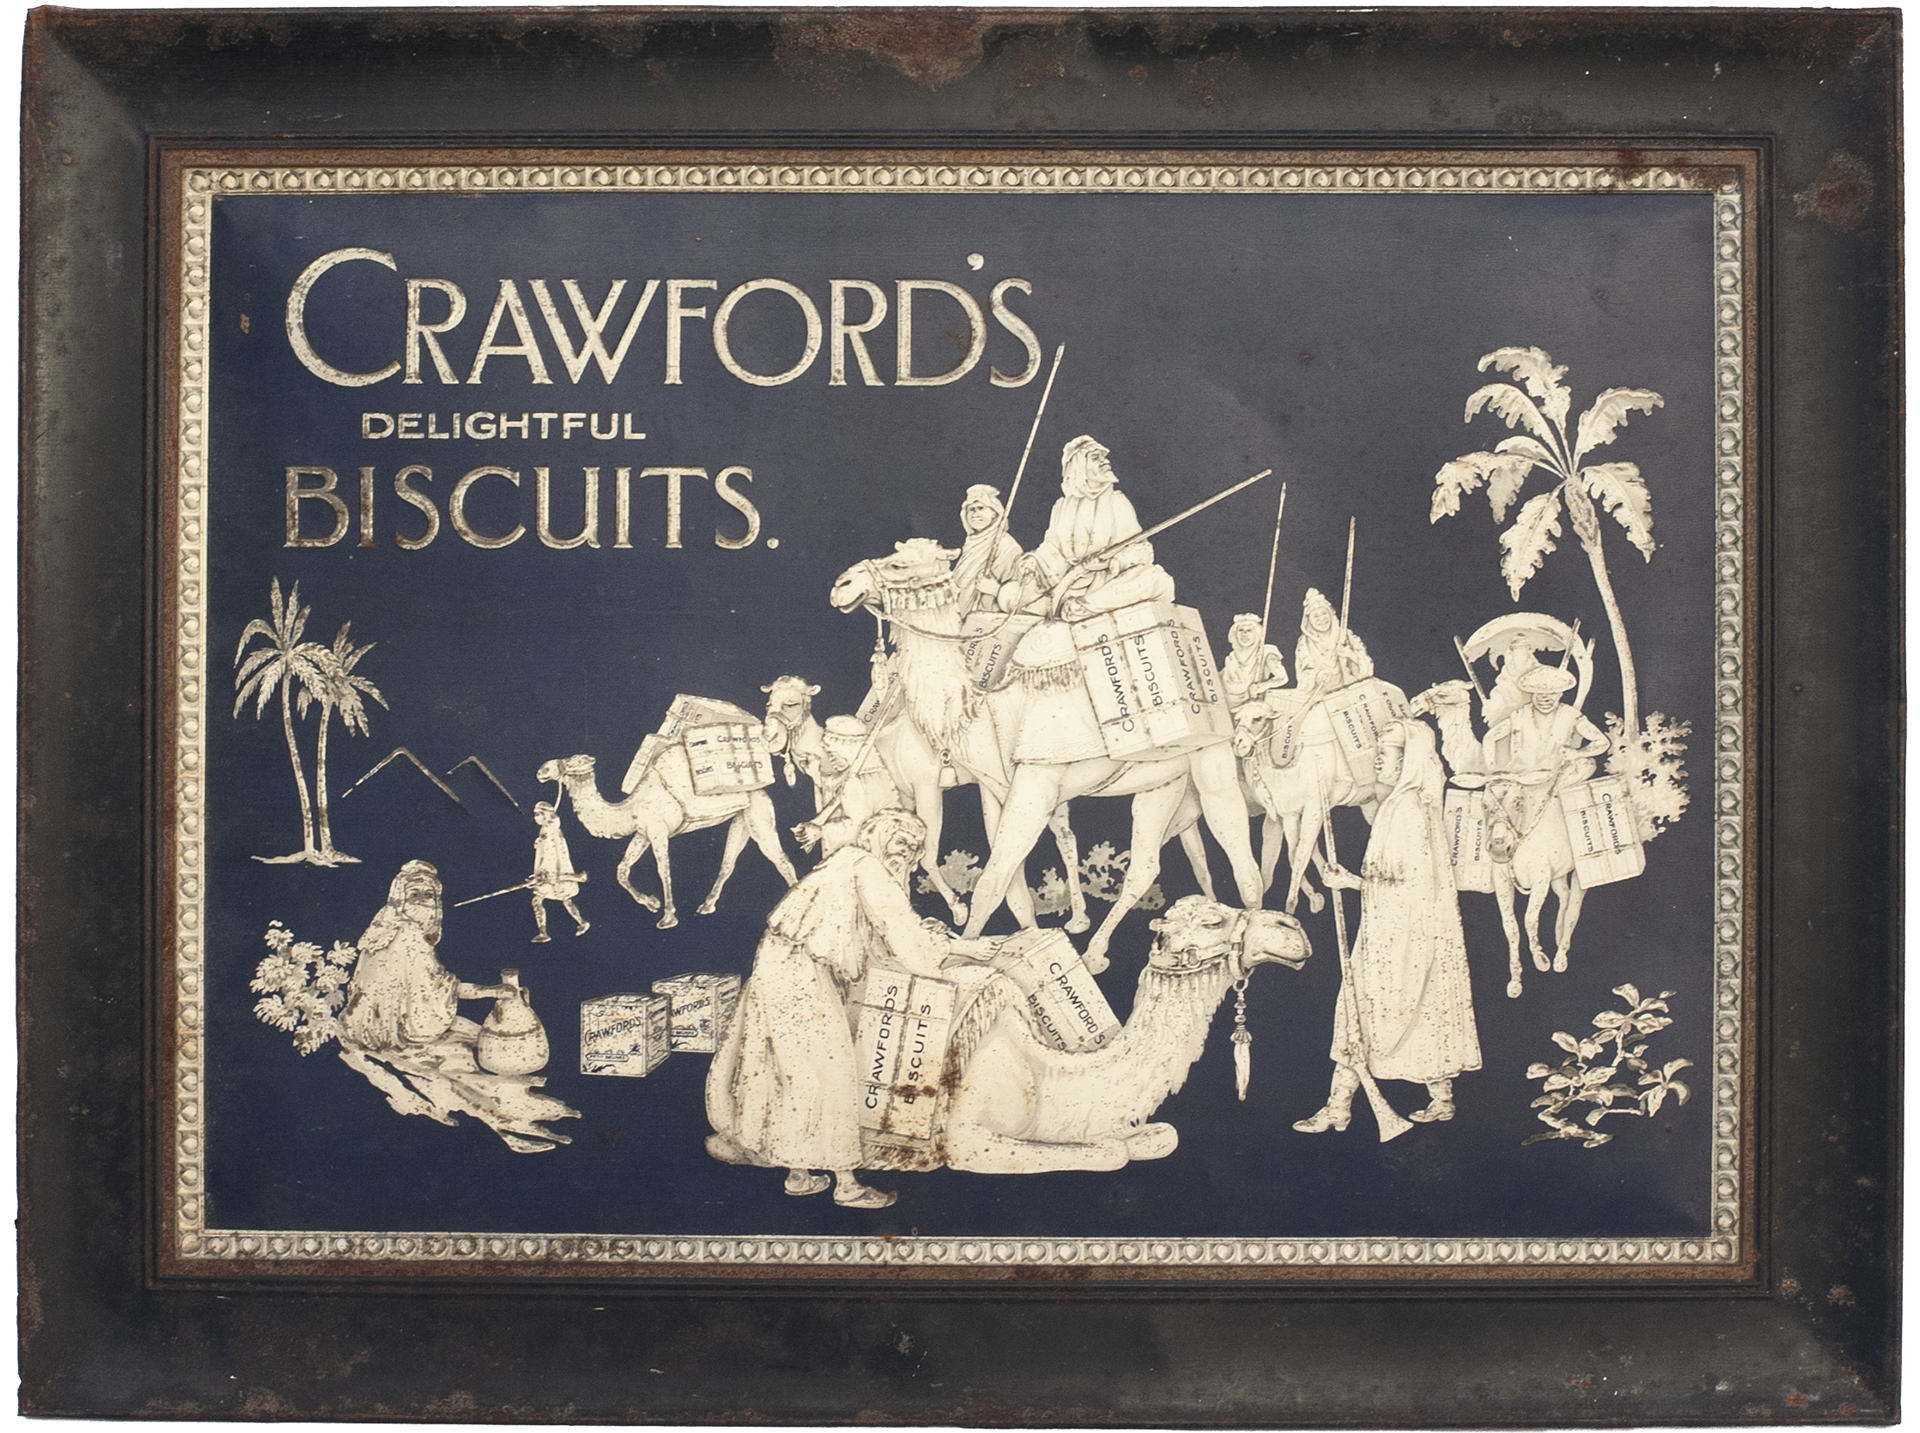 Advertising Sign CRAWFORD'S DELIGHTFUL BISCUITS.